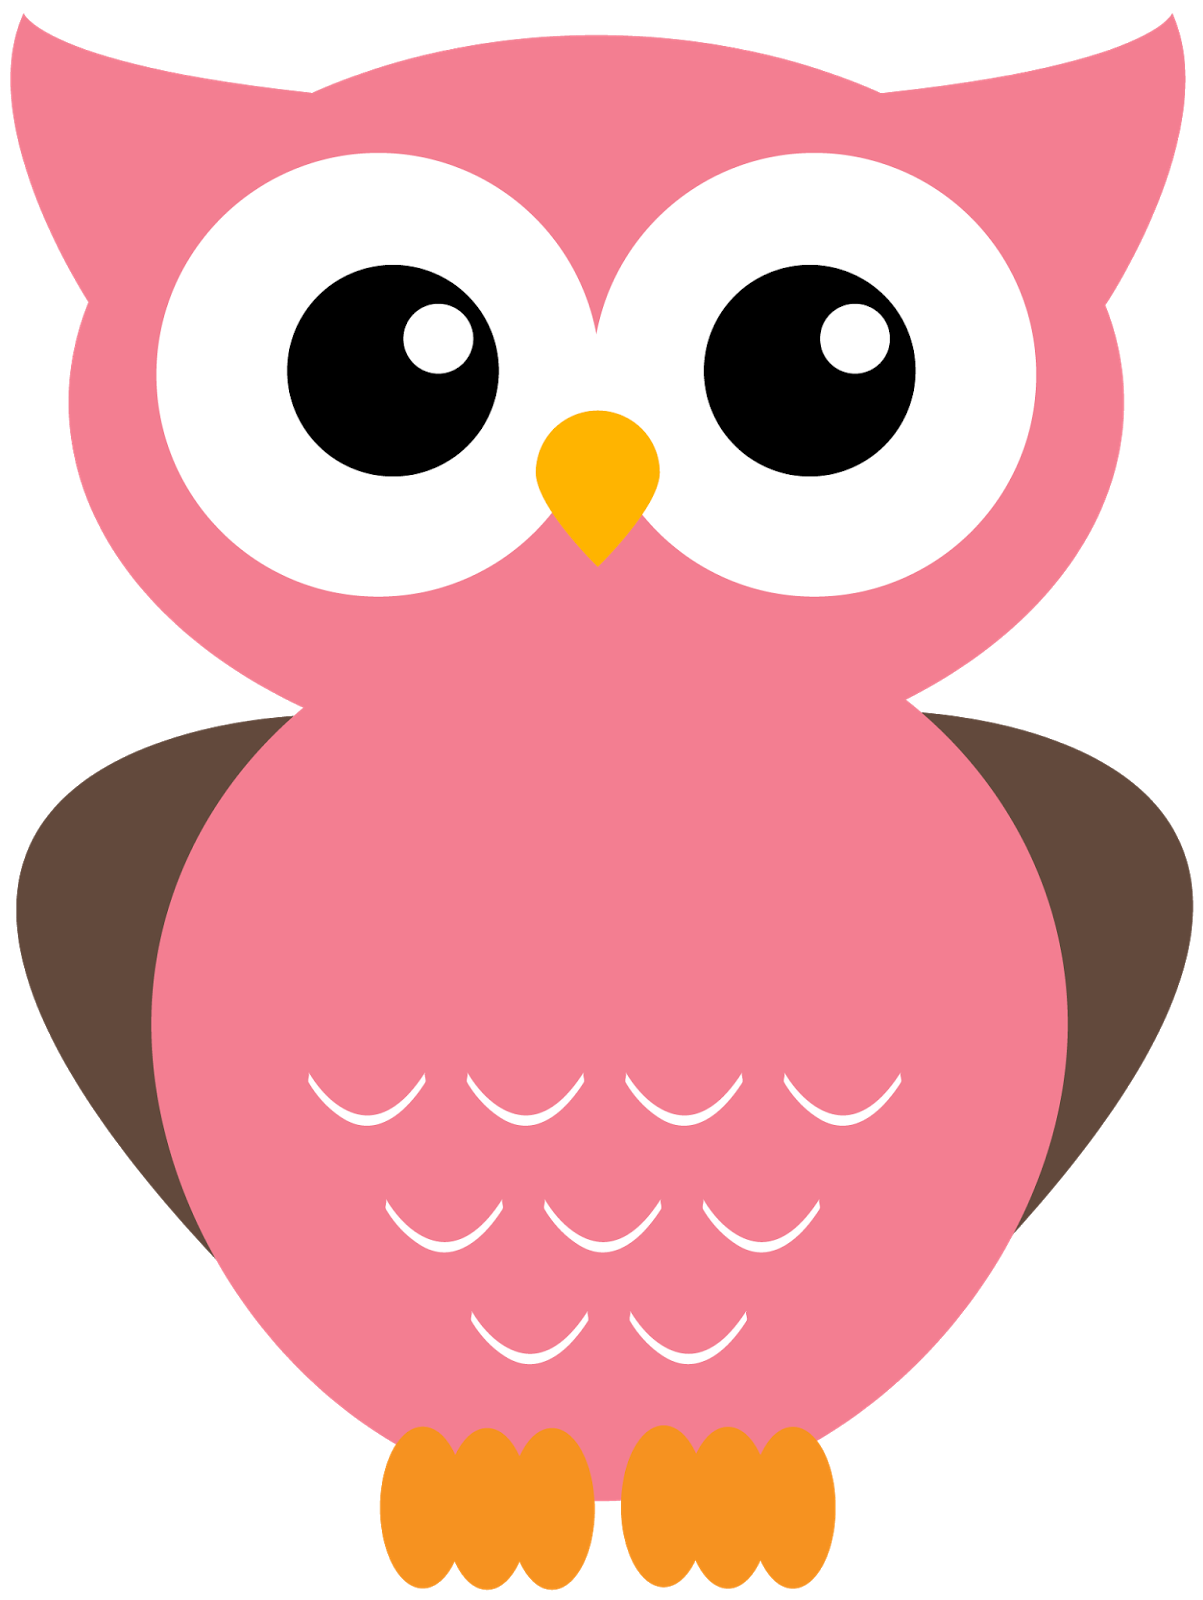 picture relating to Owl Printable titled owl clipart - Google Look Cartoons Adorable owl cartoon